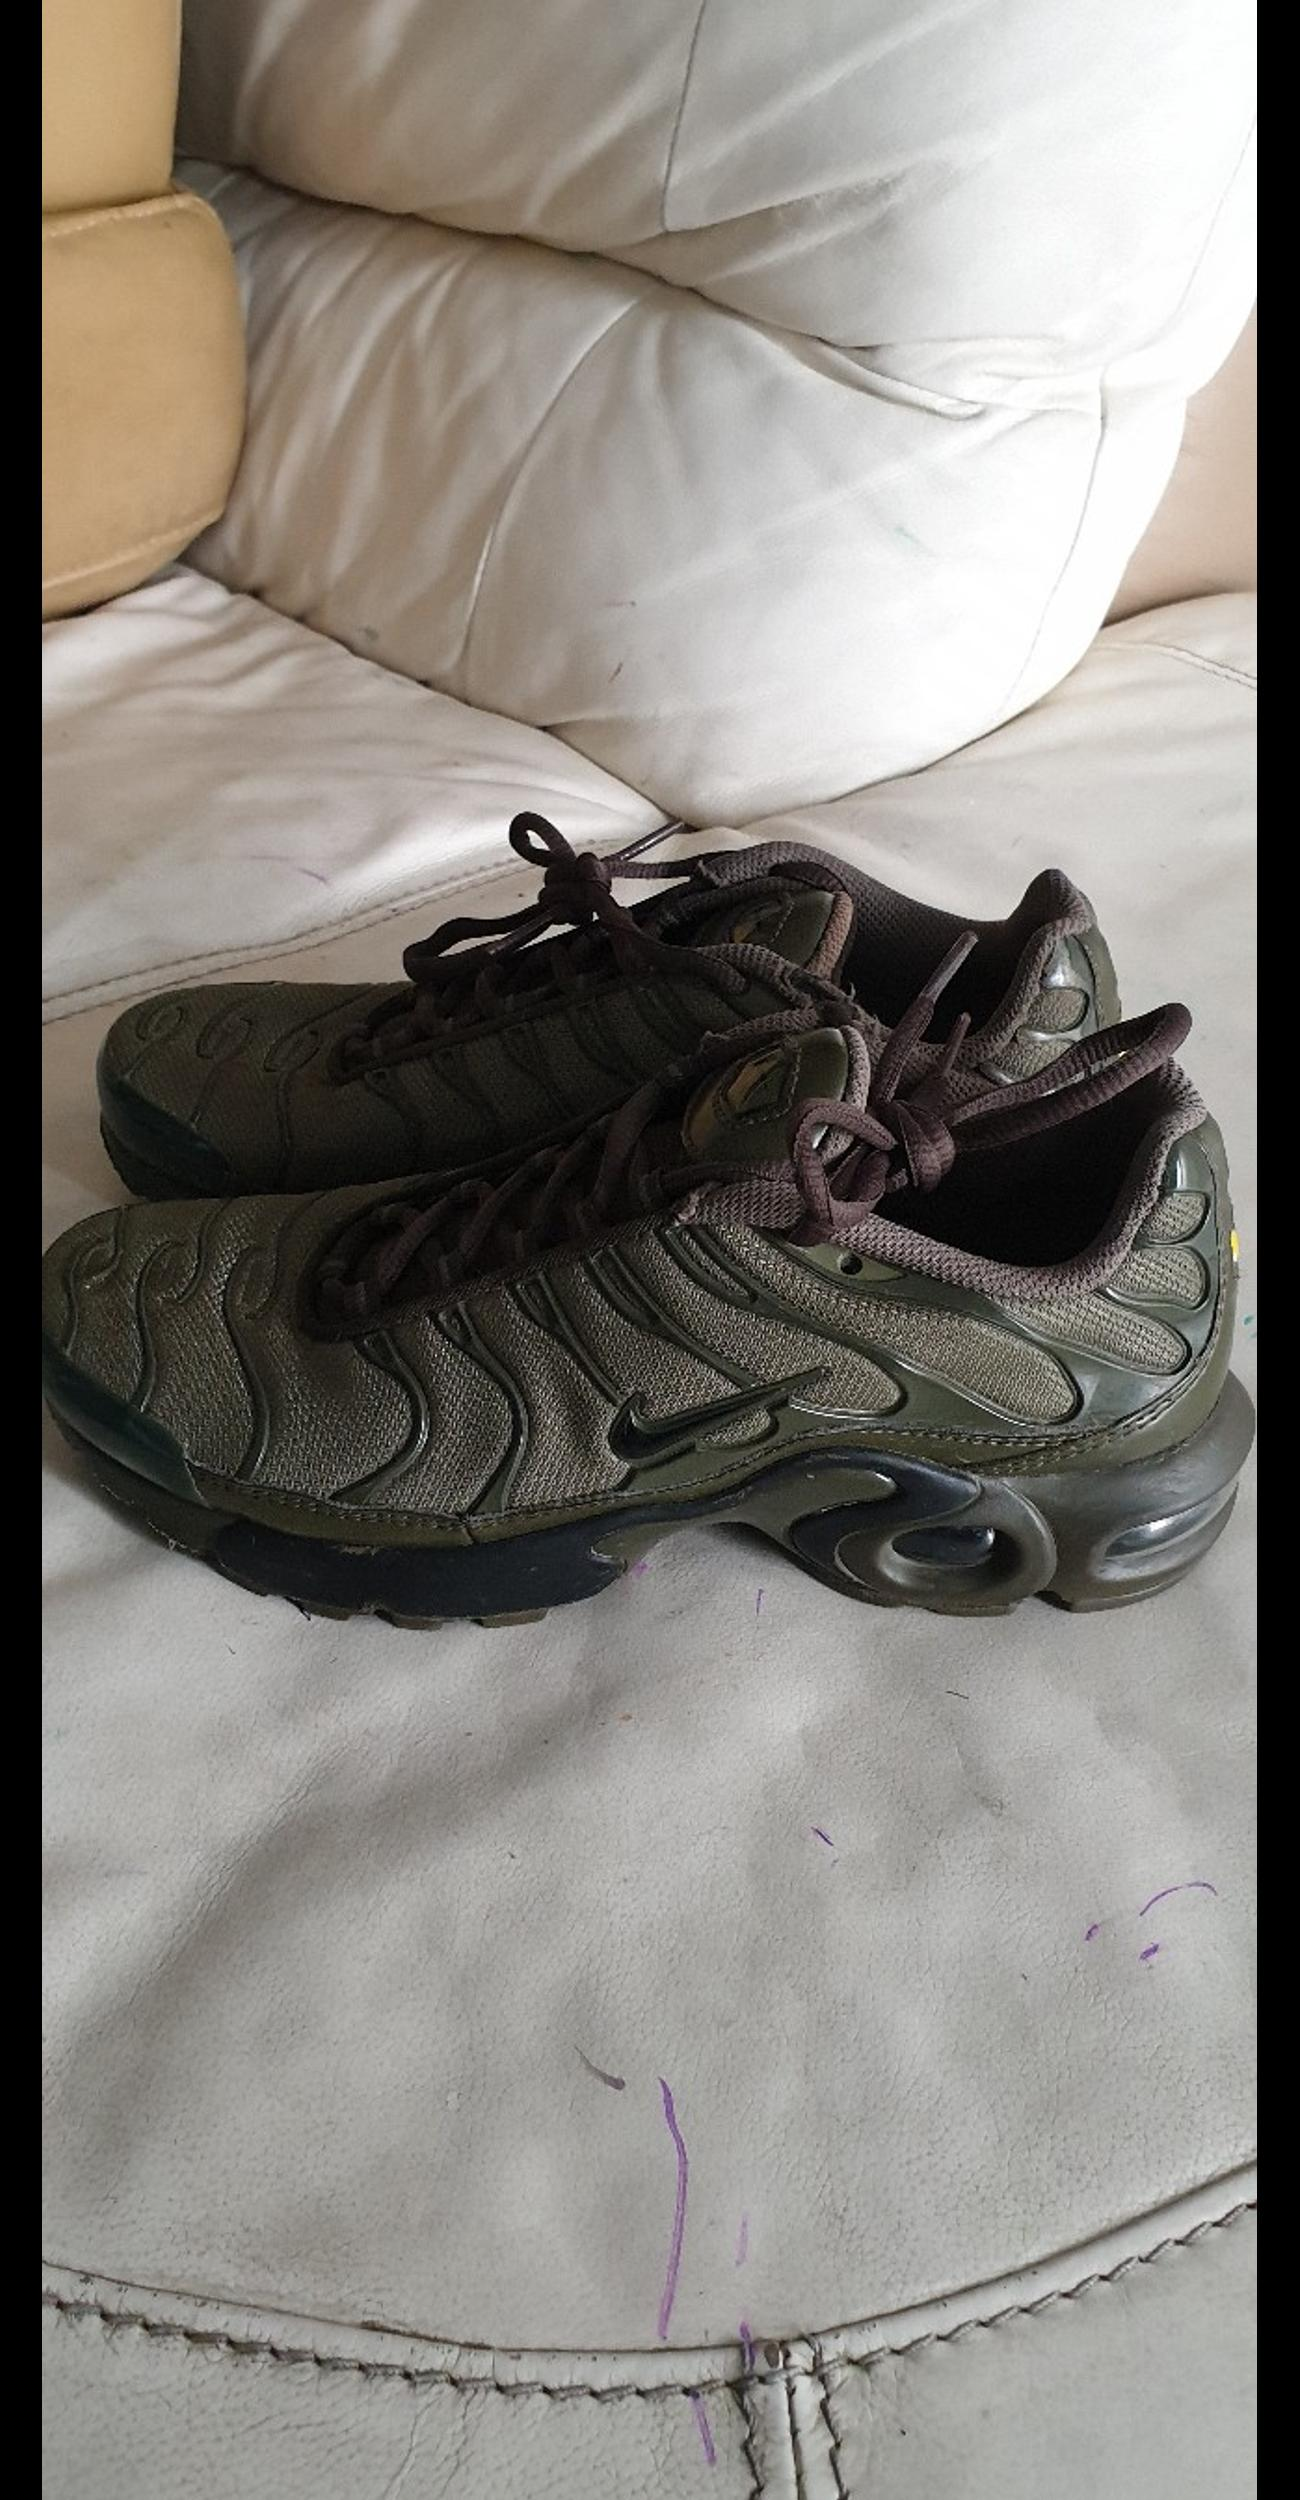 chaussures de séparation 889bd 17732 WOMEN'S NIKE AIR MAX TN TRAINERS UK 6 EURO 39 in SW9 Lambeth ...